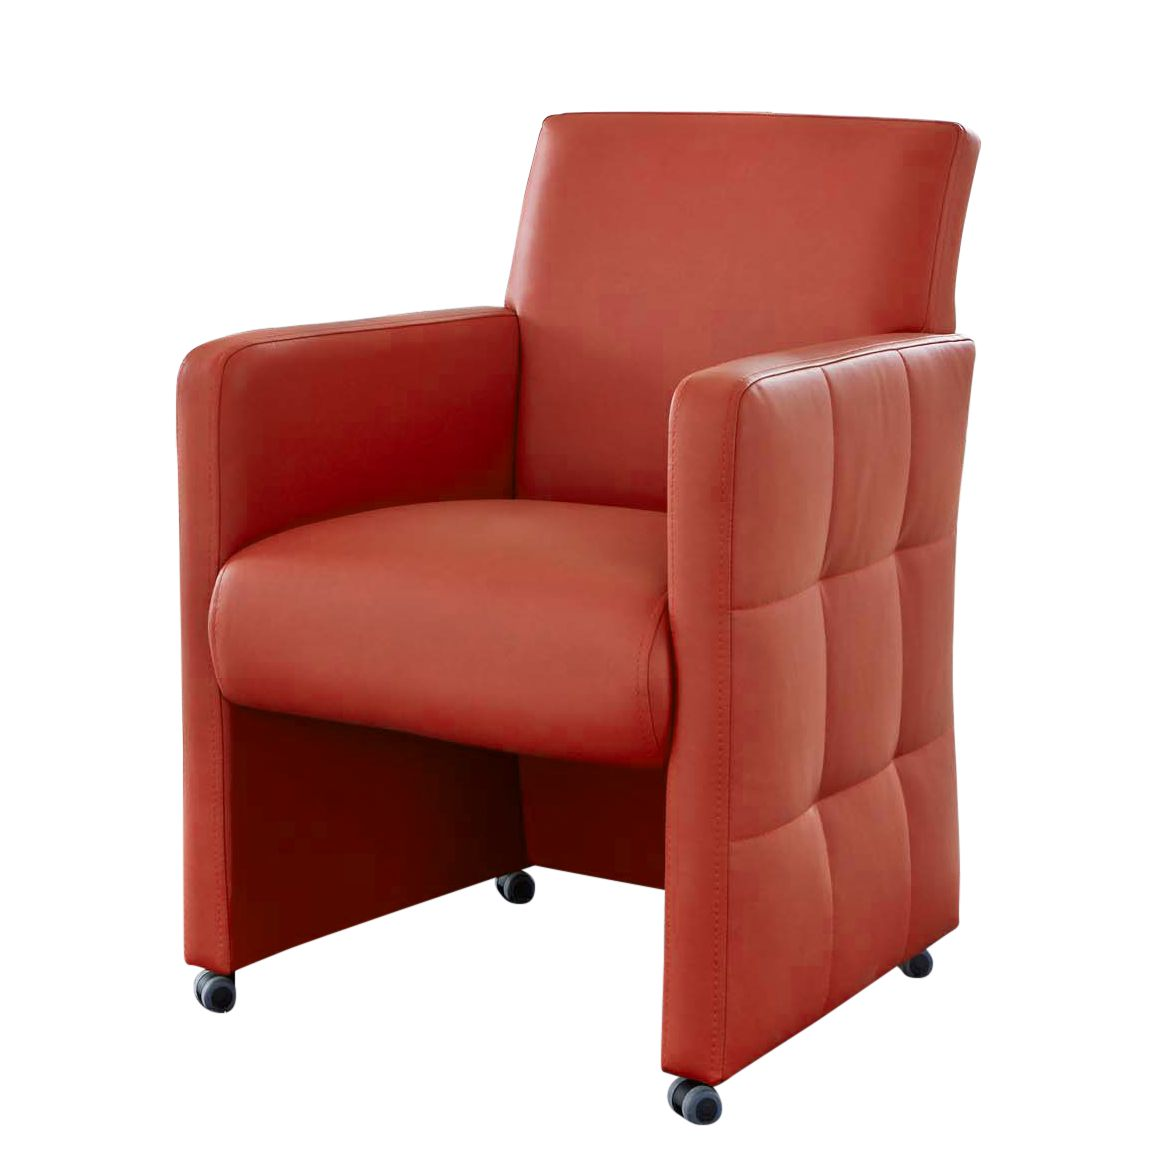 Fauteuil Pitalito - Imitation cuir - Rouge, roomscape